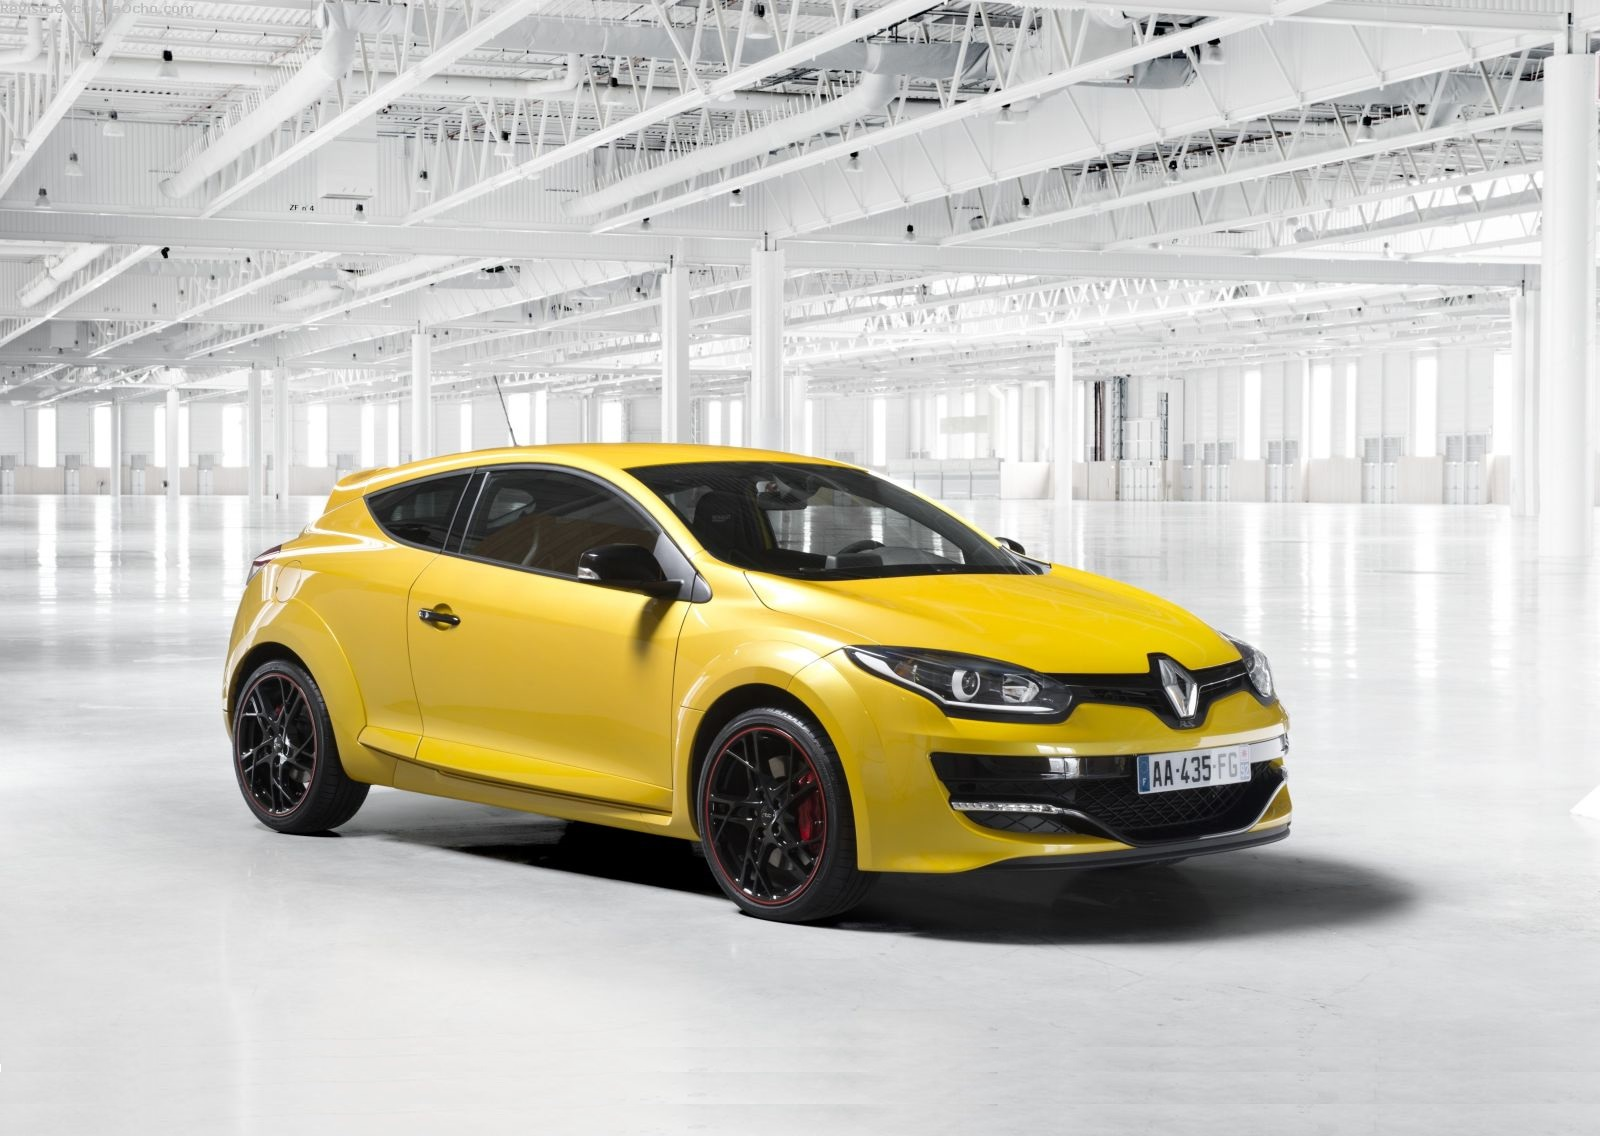 renault megane rs coupe specs 2014 2015 2016 2017. Black Bedroom Furniture Sets. Home Design Ideas